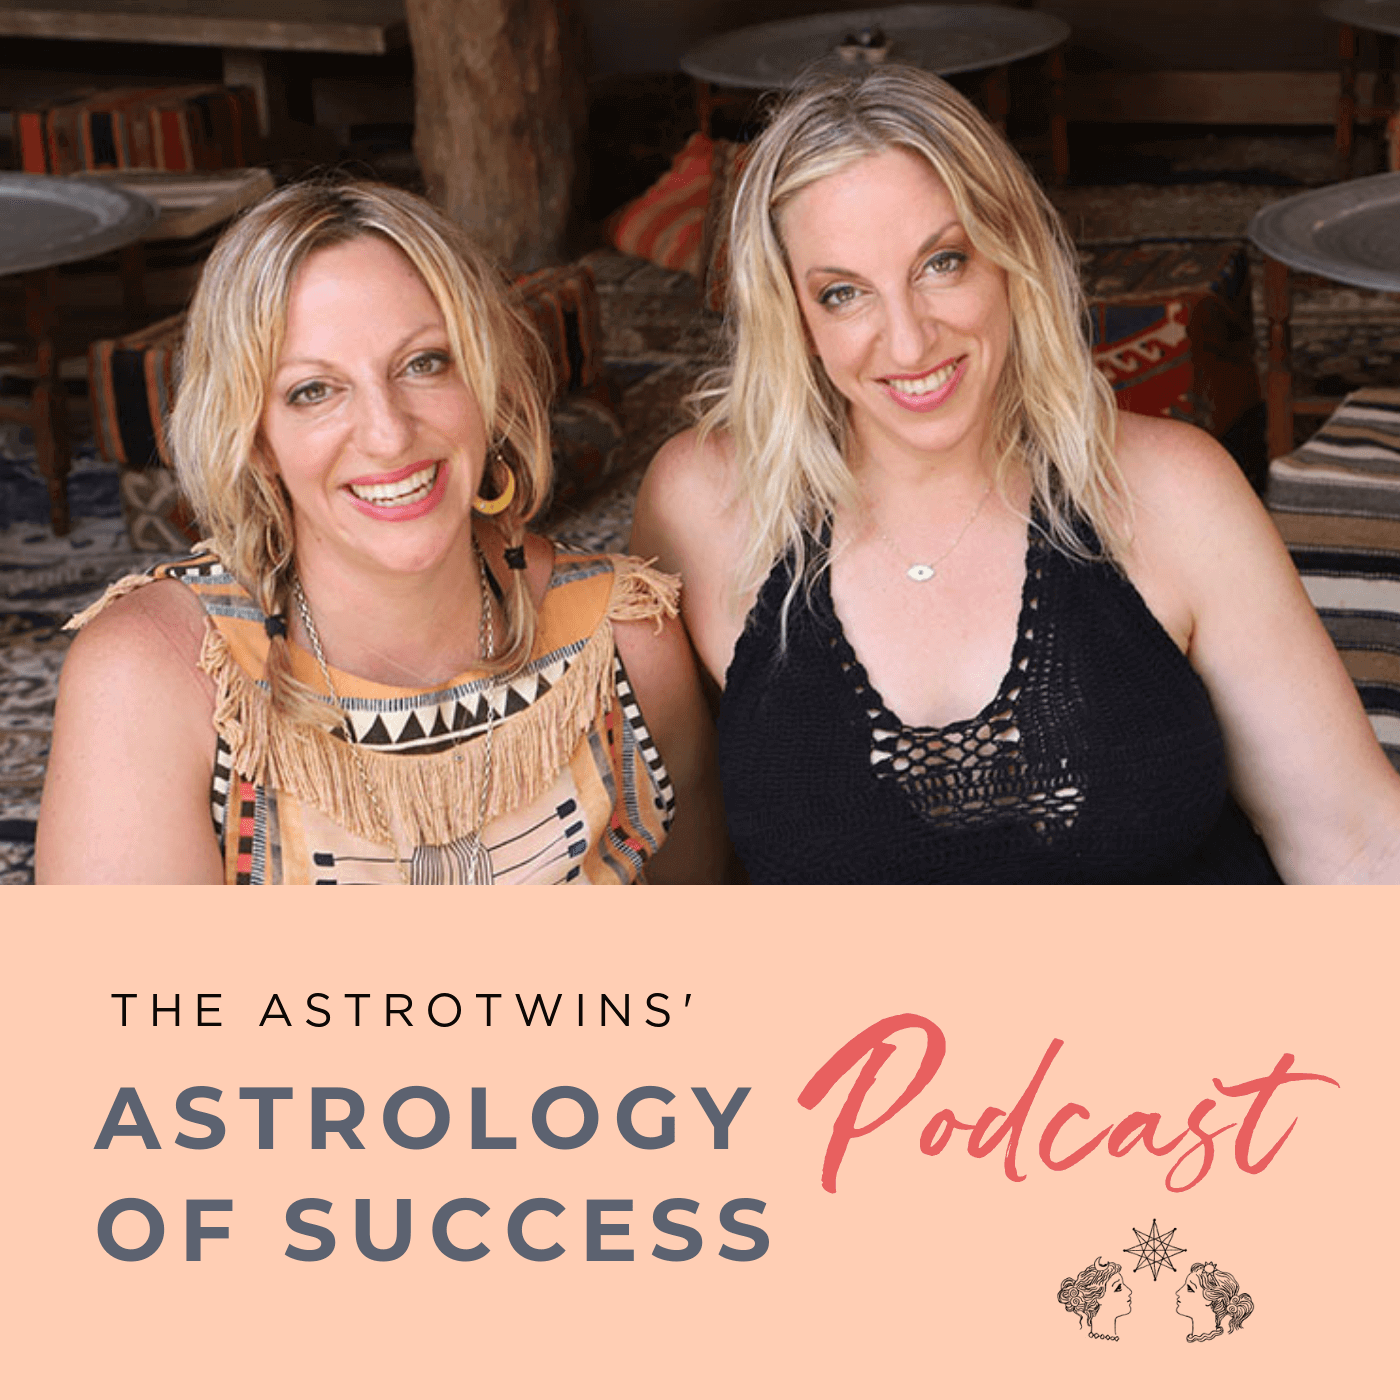 Astrology-of-Success-Podcast-Astrotwins-1.png